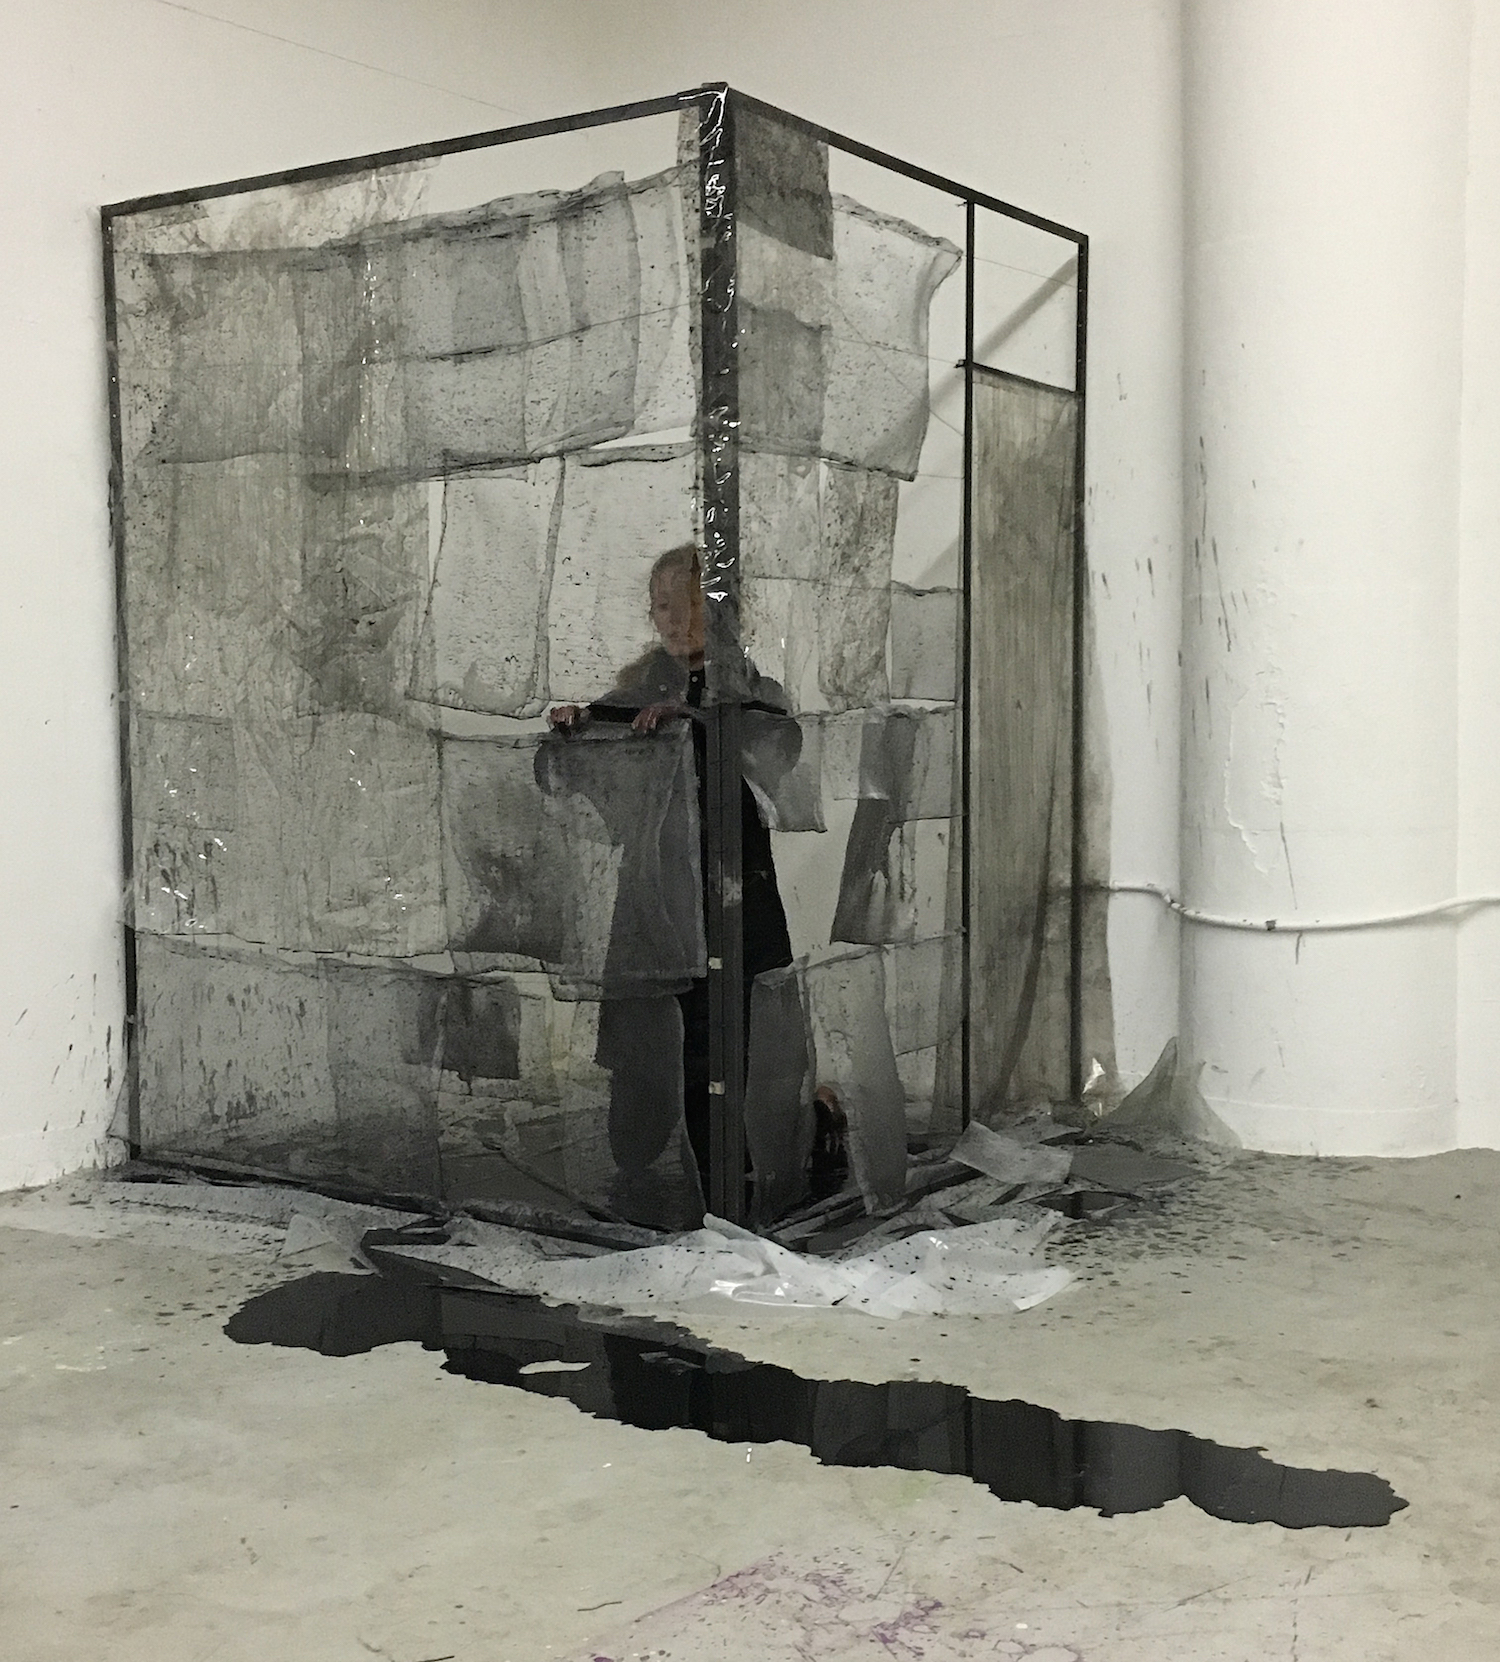 Julia Betts,  Window Screens , durational performance with ink, steel, and window screens, 3:30, Rhode Island School of Design, 2016